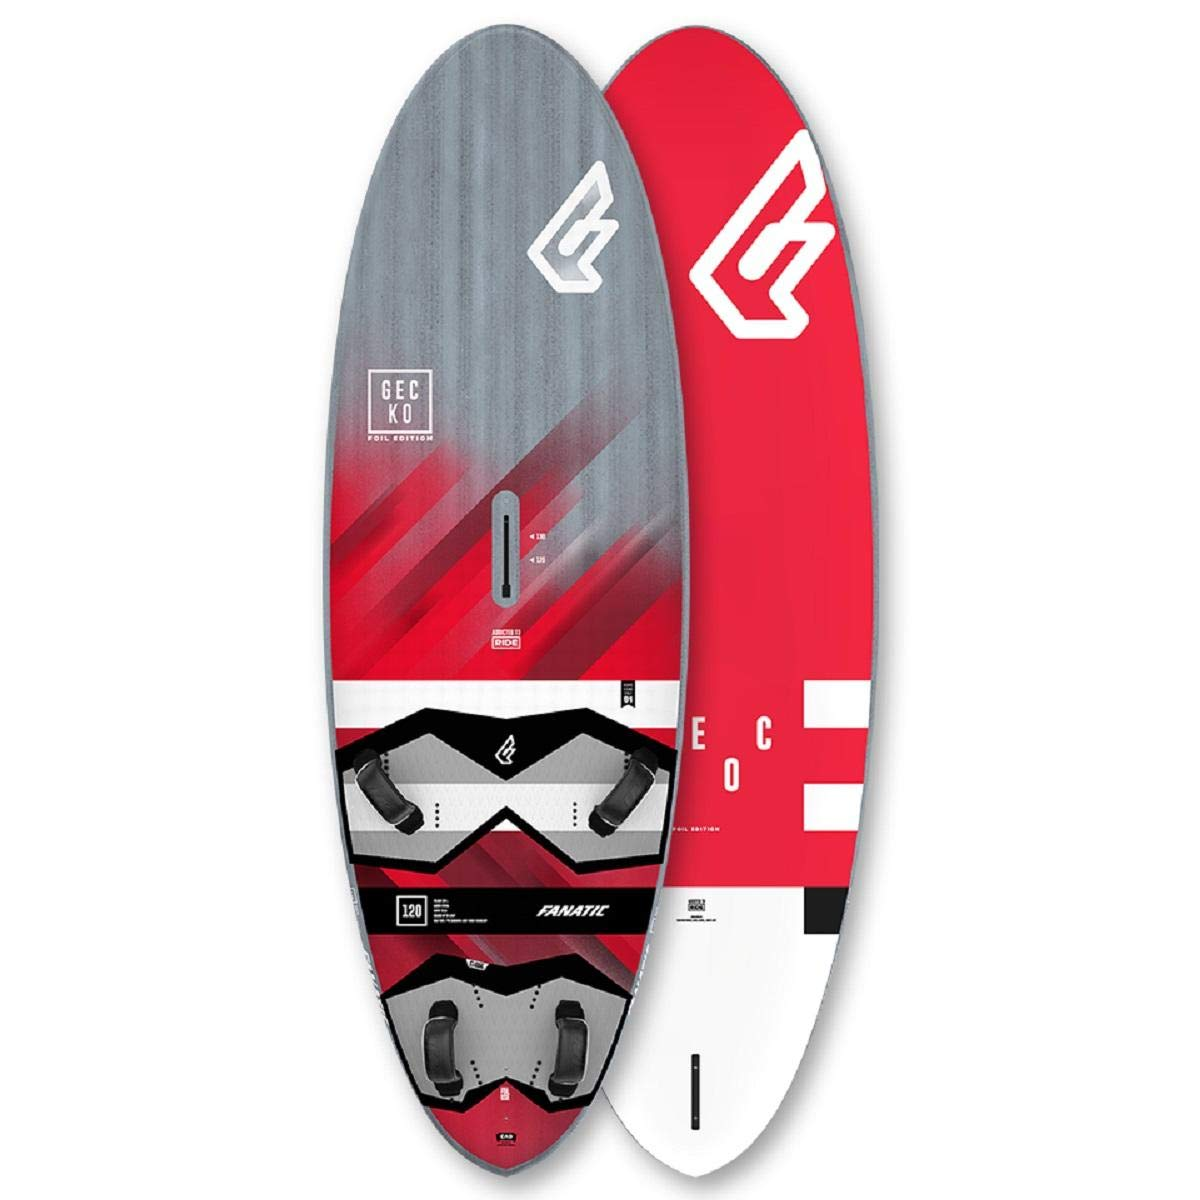 Fanatic Gecko Ltd Foil Tabla de Windsurf 2019, 120: Amazon.es ...